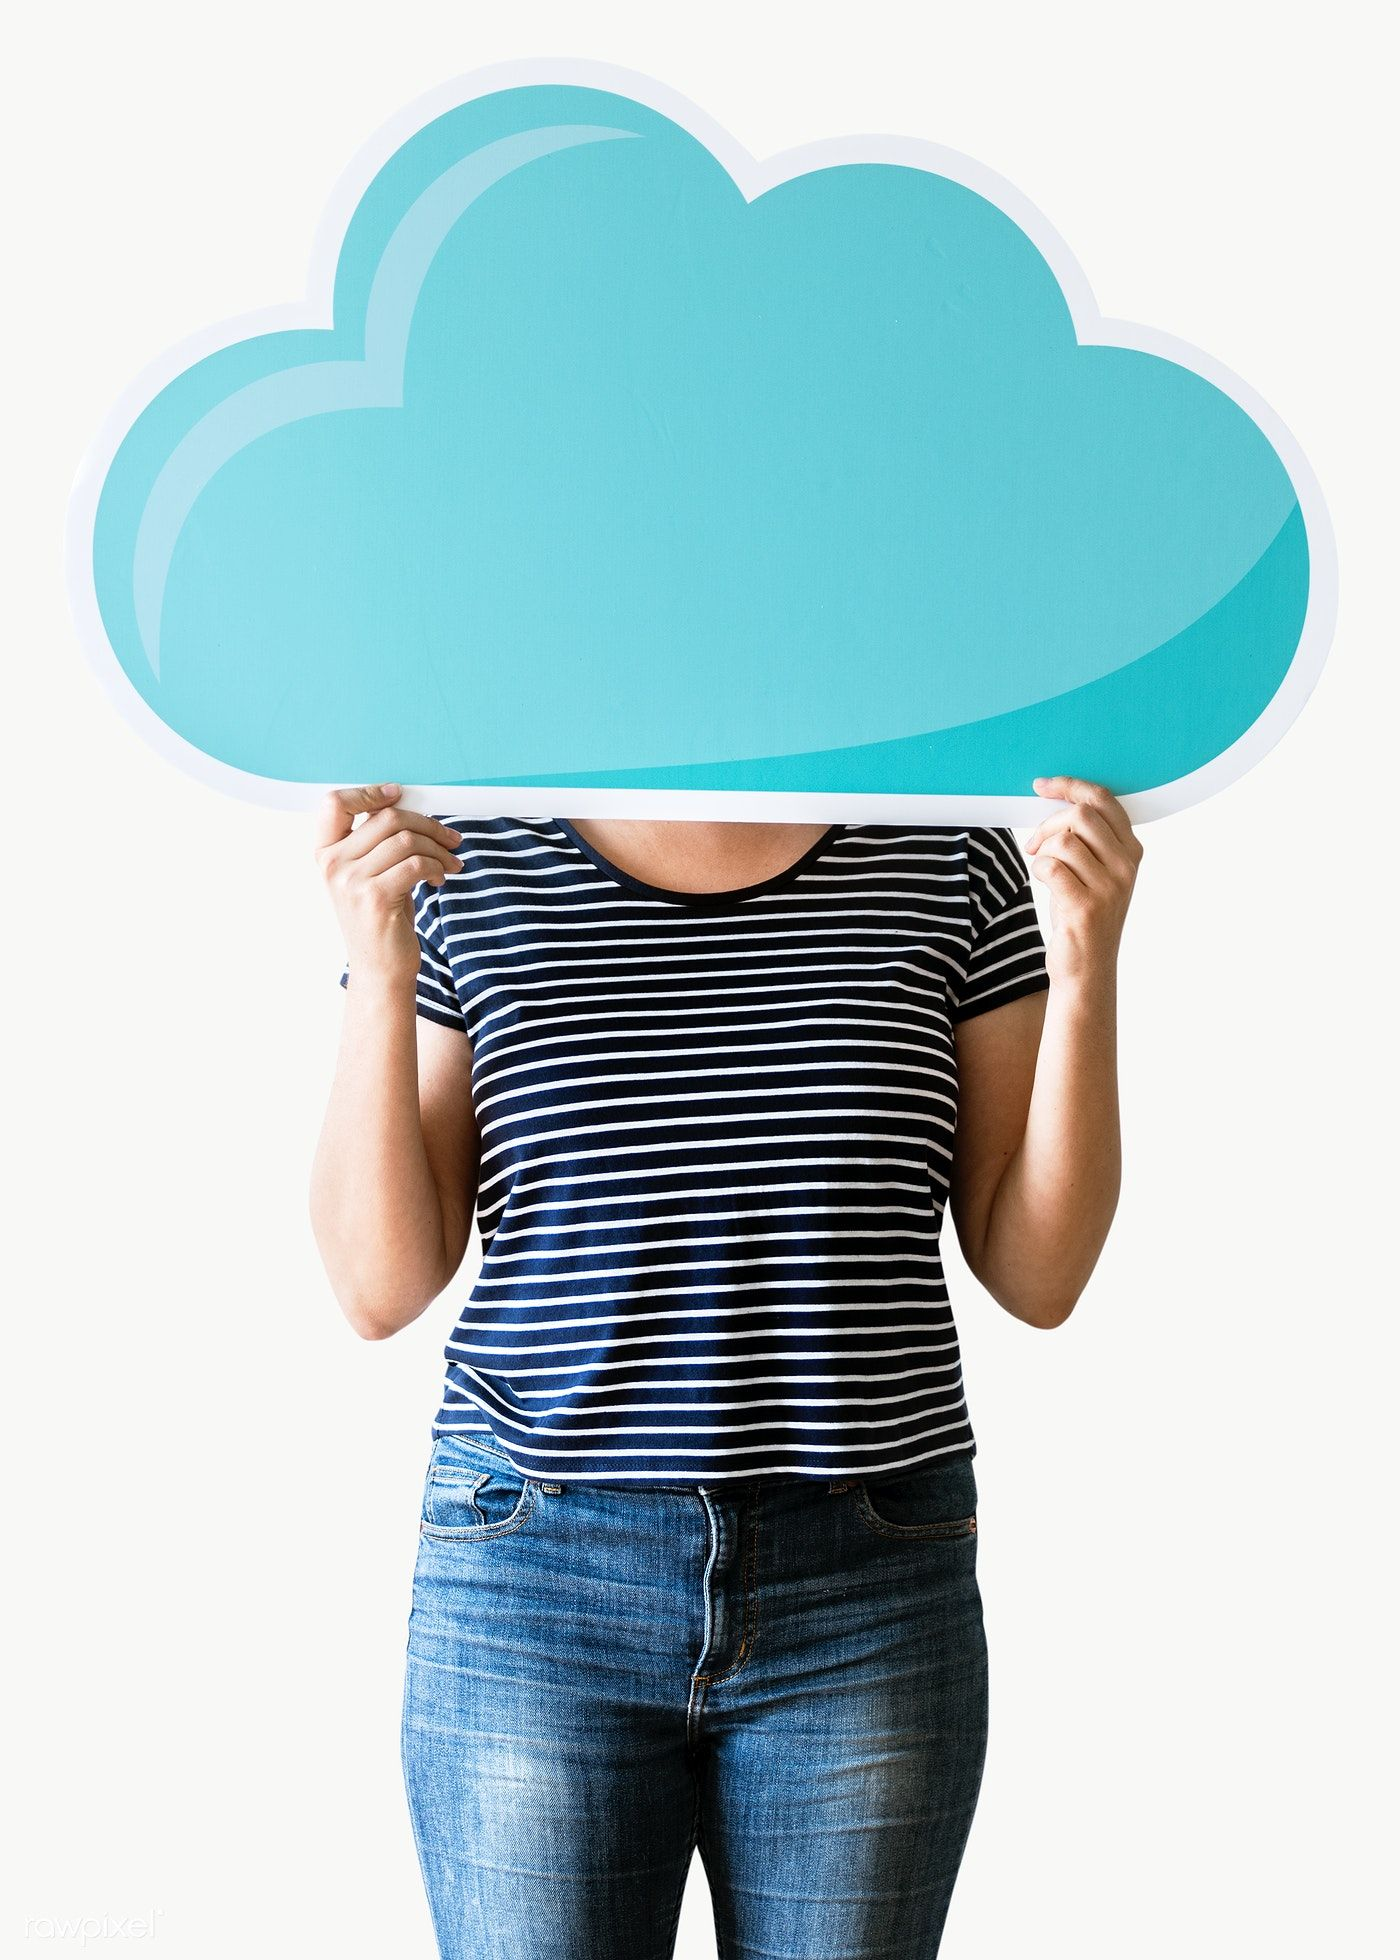 Download Premium Png Of Woman Holding A Computing Cloud Transparent Png